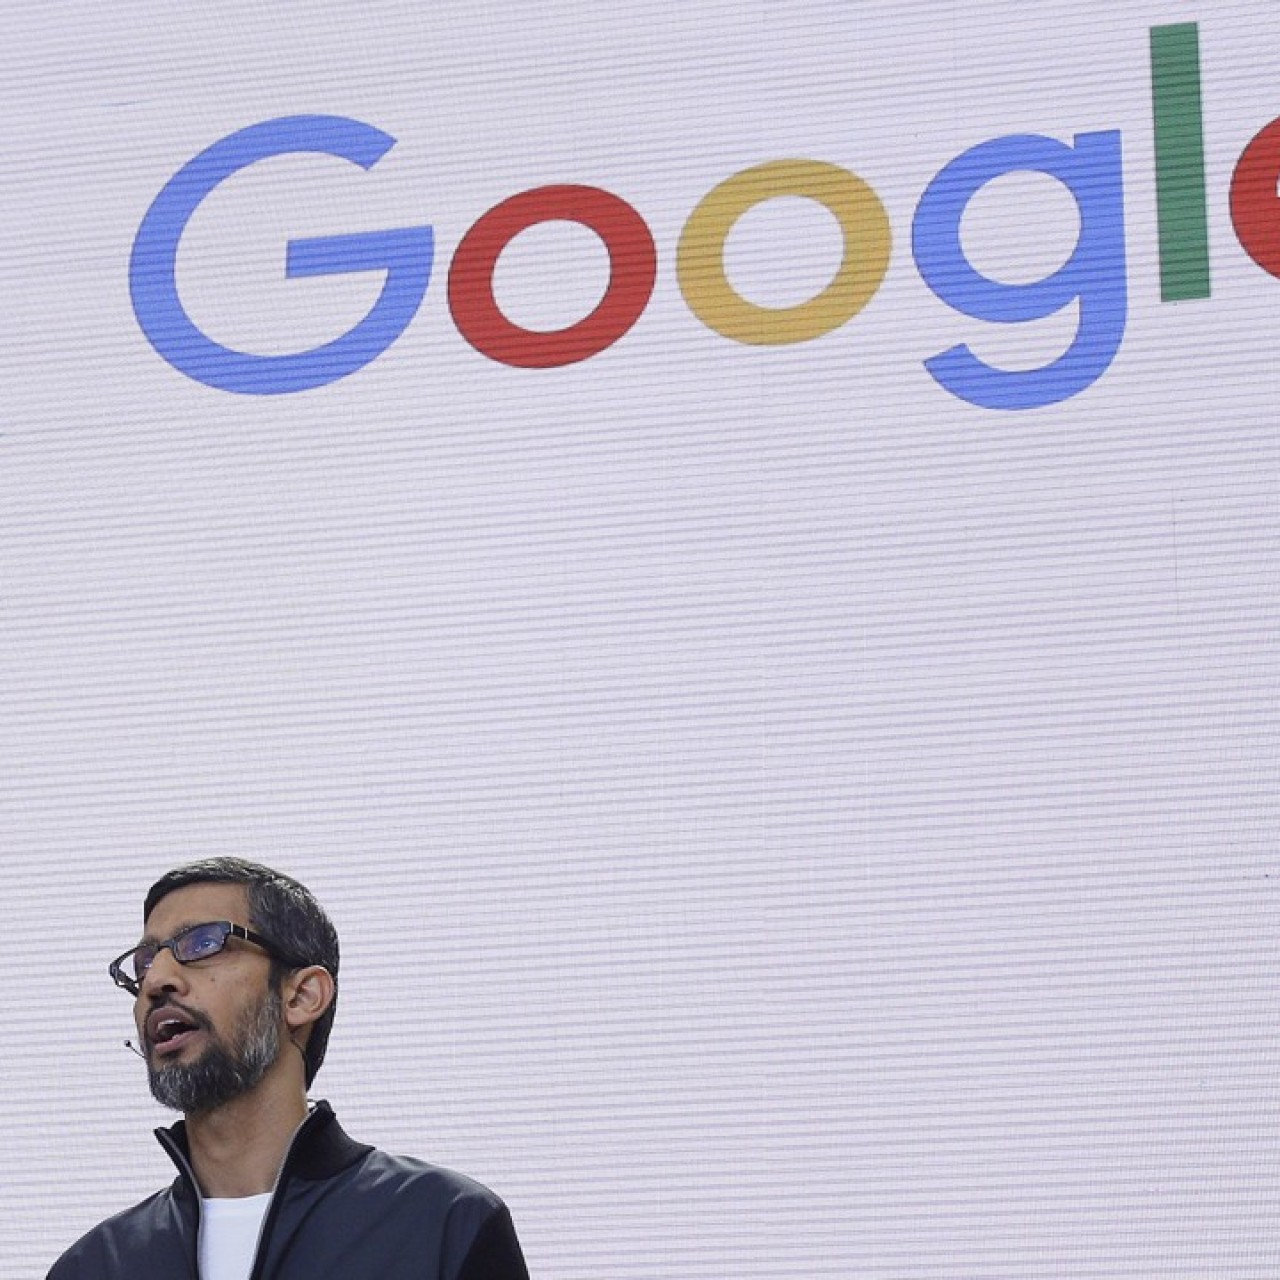 Google CEO says China search engine would serve 99 per cent of